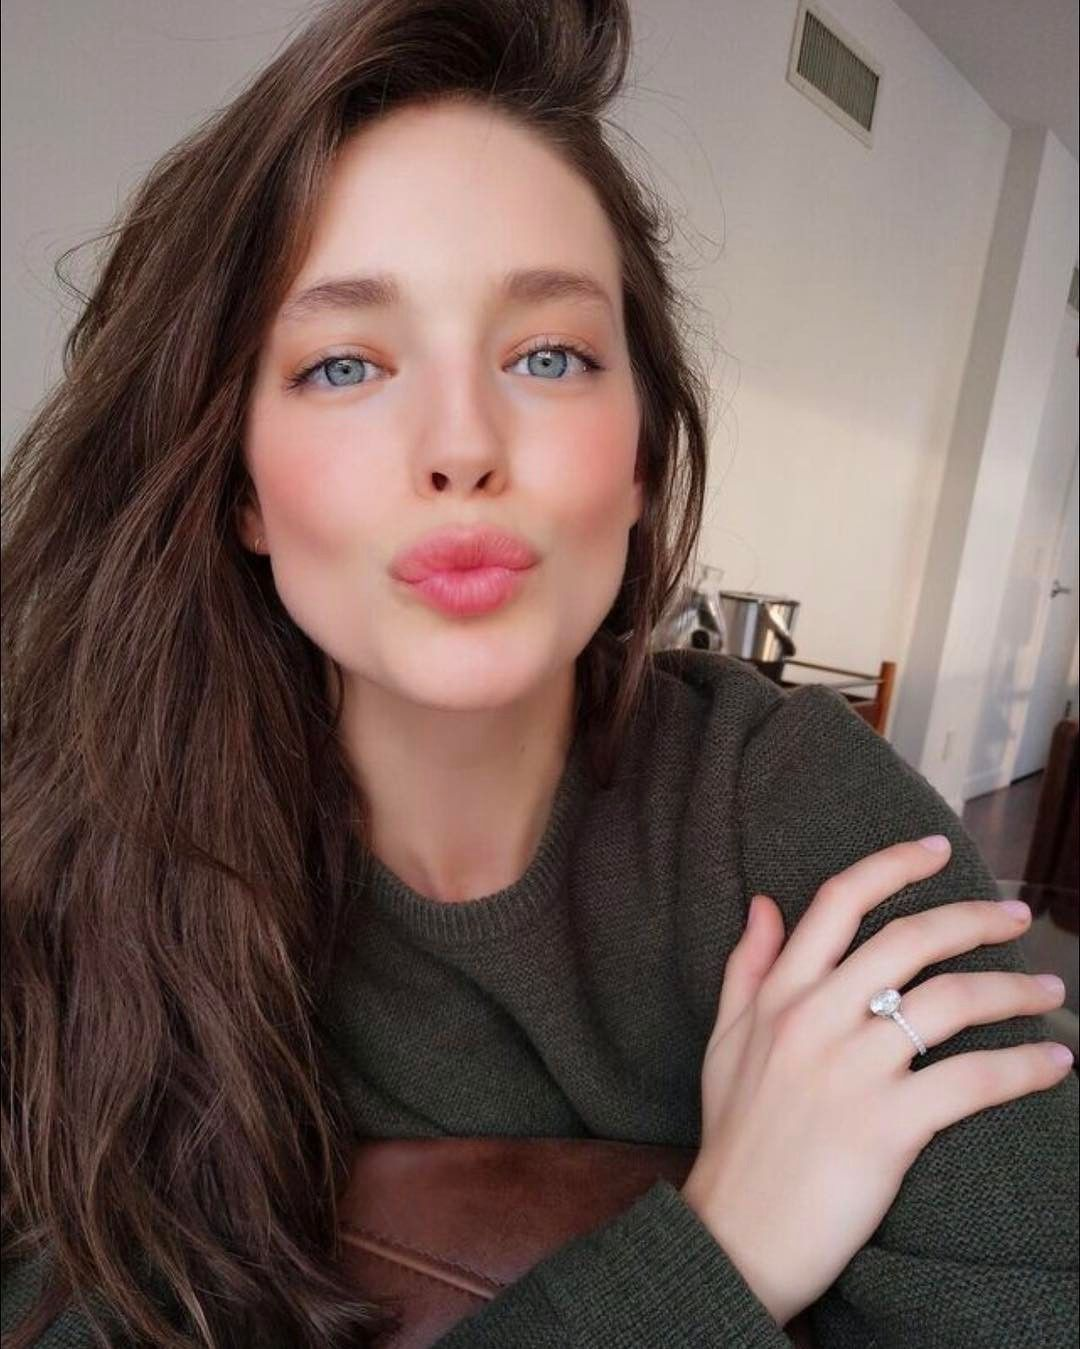 Selfie Emily Didonato nudes (72 photo), Tits, Leaked, Twitter, braless 2015